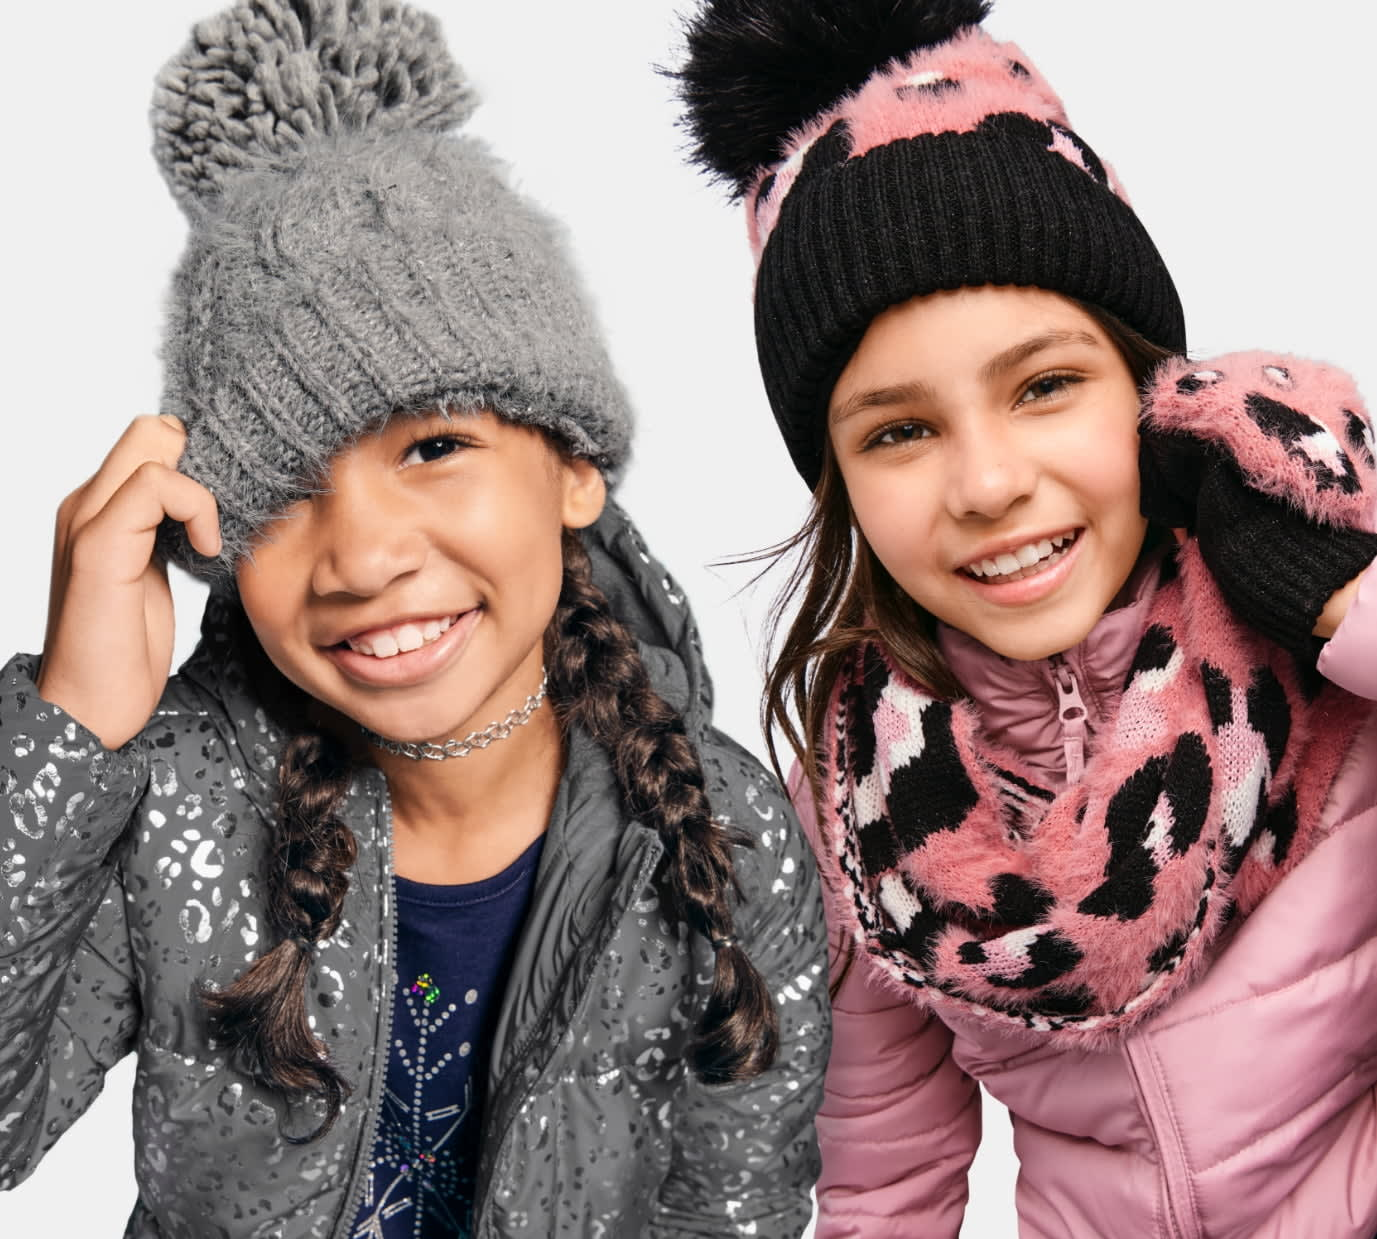 ALL OUTERWEAR 50-60% OFF!